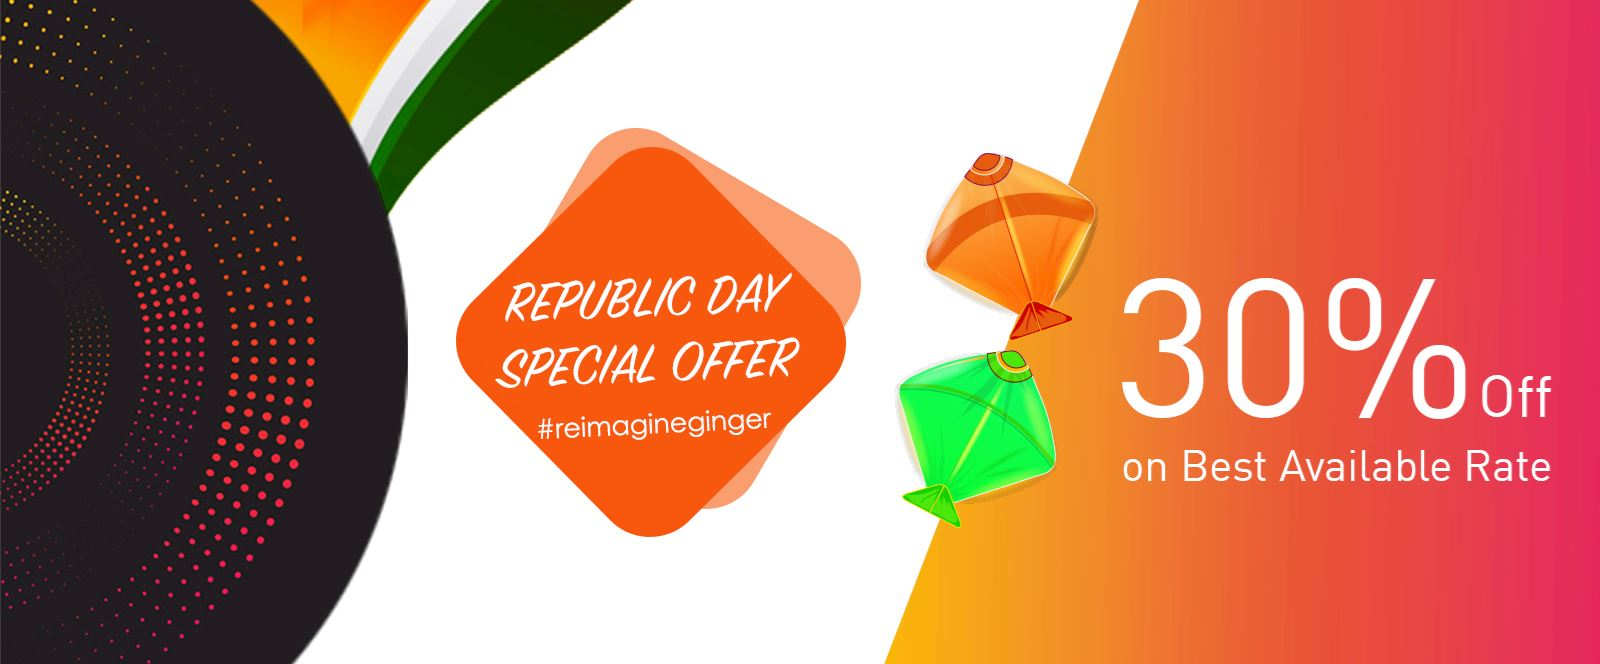 Republic Day Special Offer